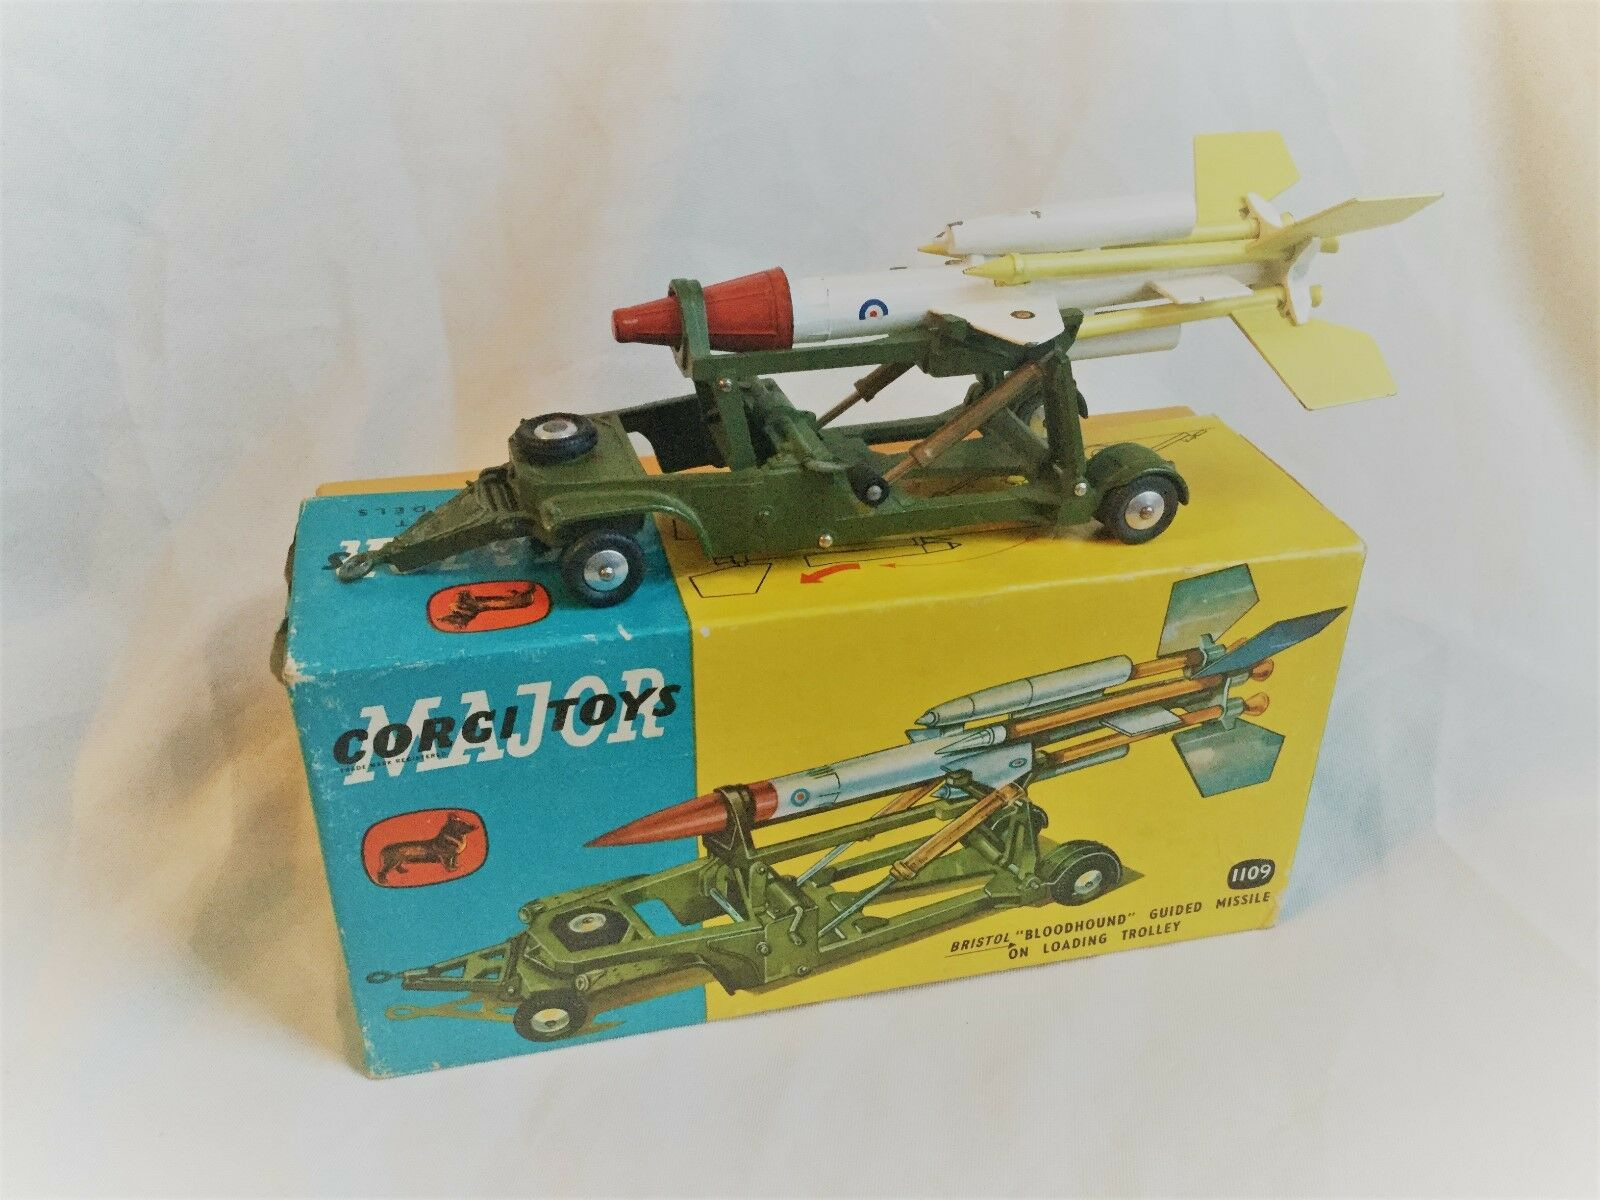 Corgi Toys Major no. 1109  Bloodhound  Guided Missile on Loading Trolley Boxed